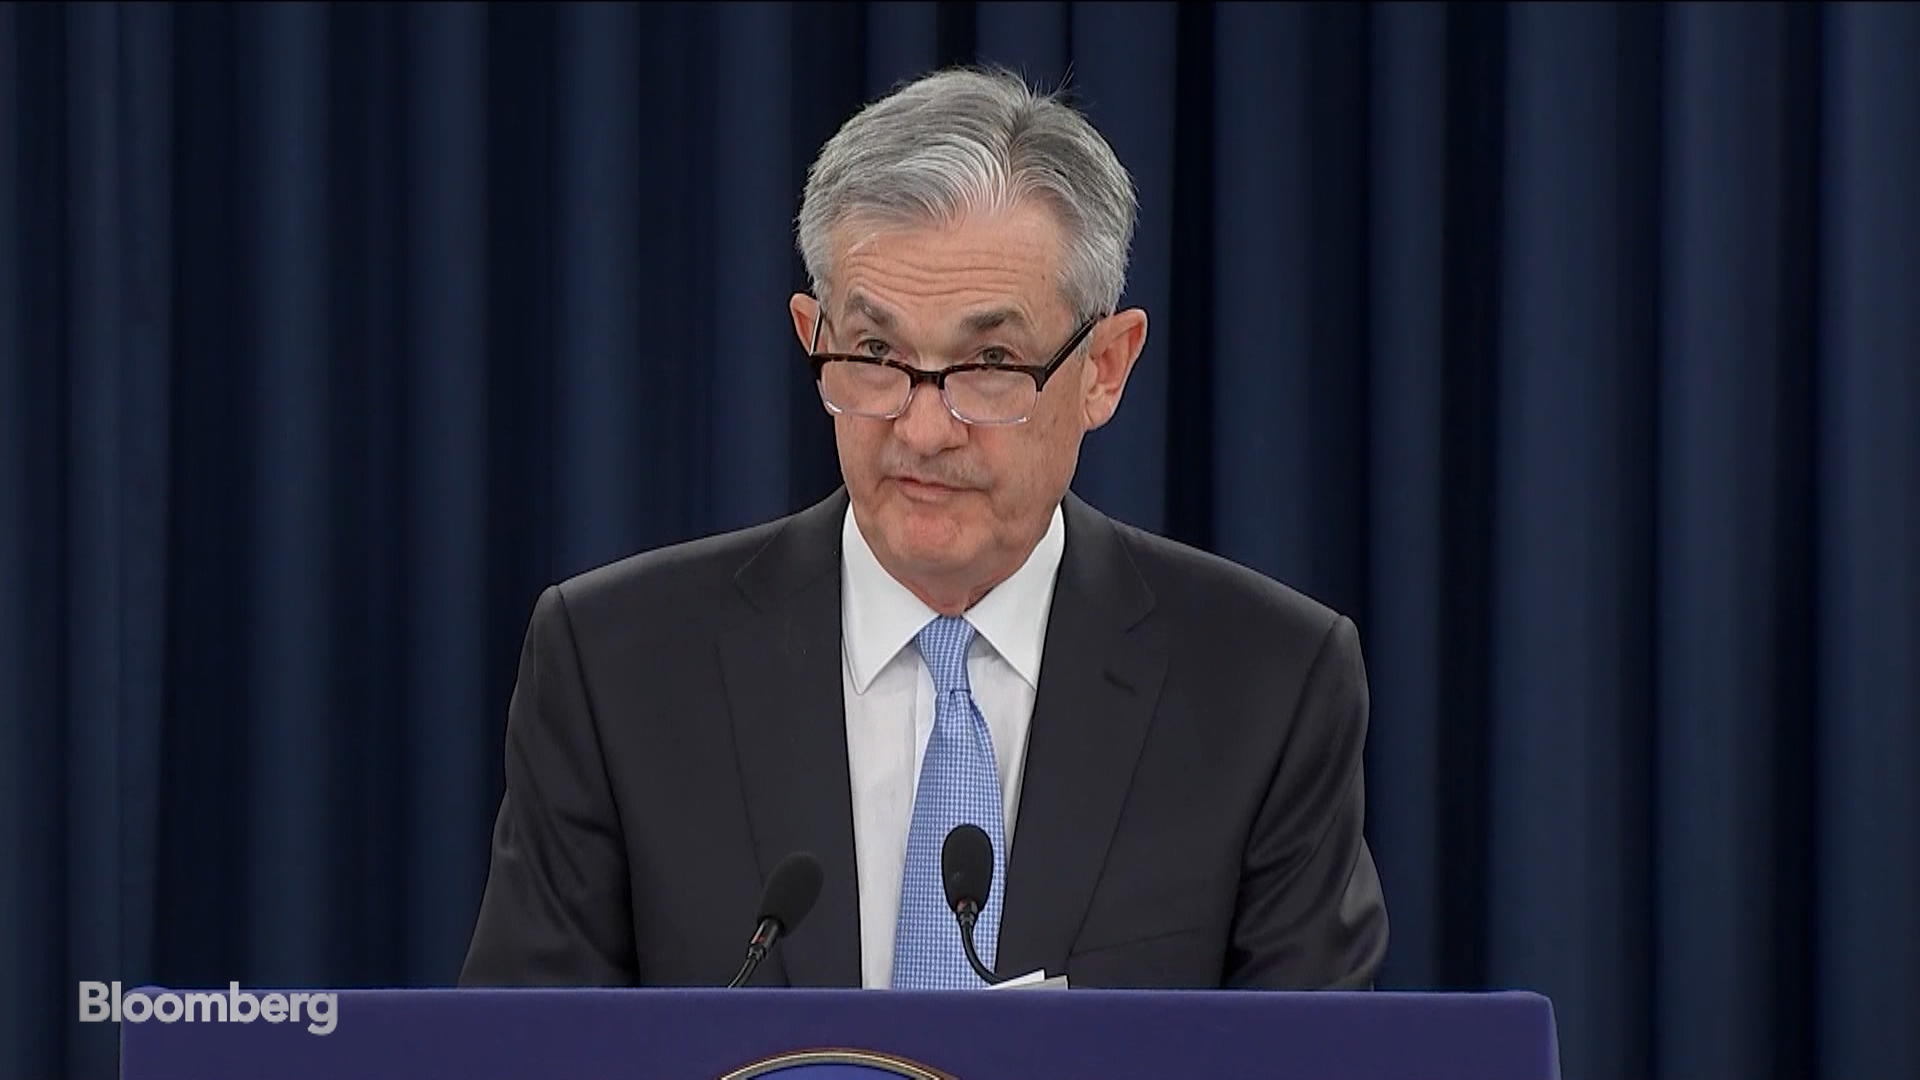 Fed's Powell Says Current Policy Stance Is Appropriate